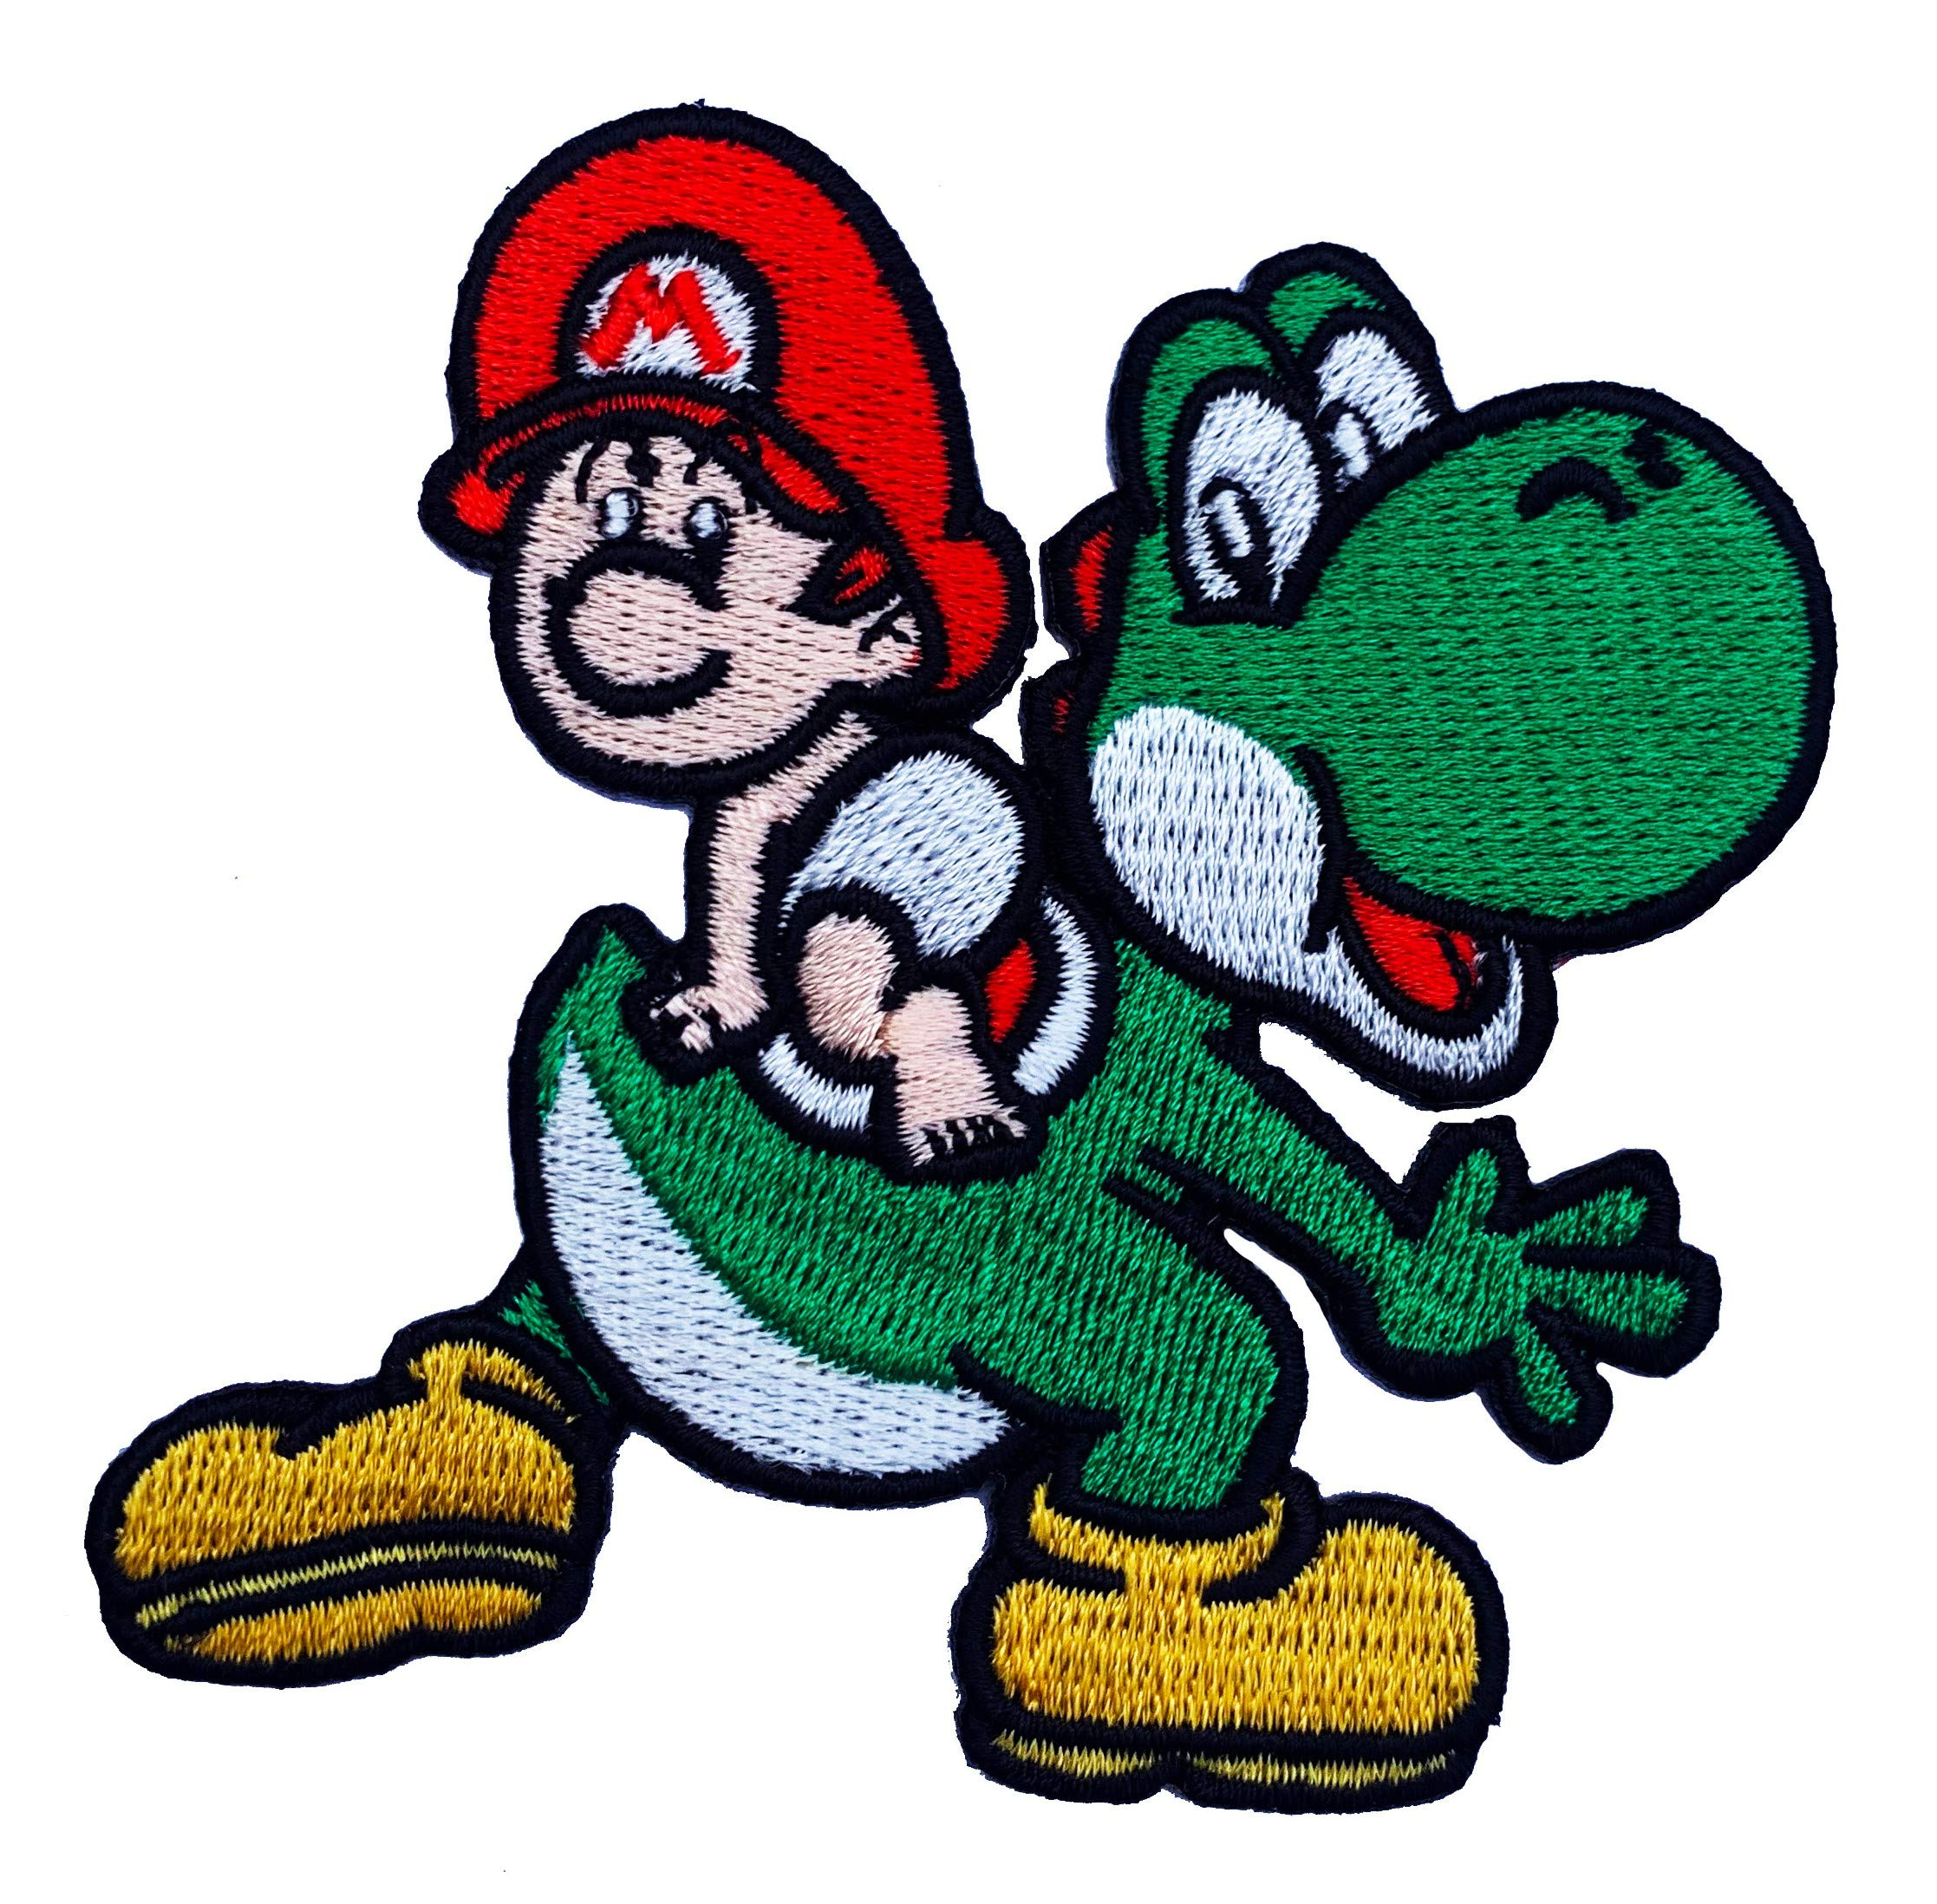 Yoshi S Island Patch Embroidered Iron Buy Online In Aruba At Desertcart